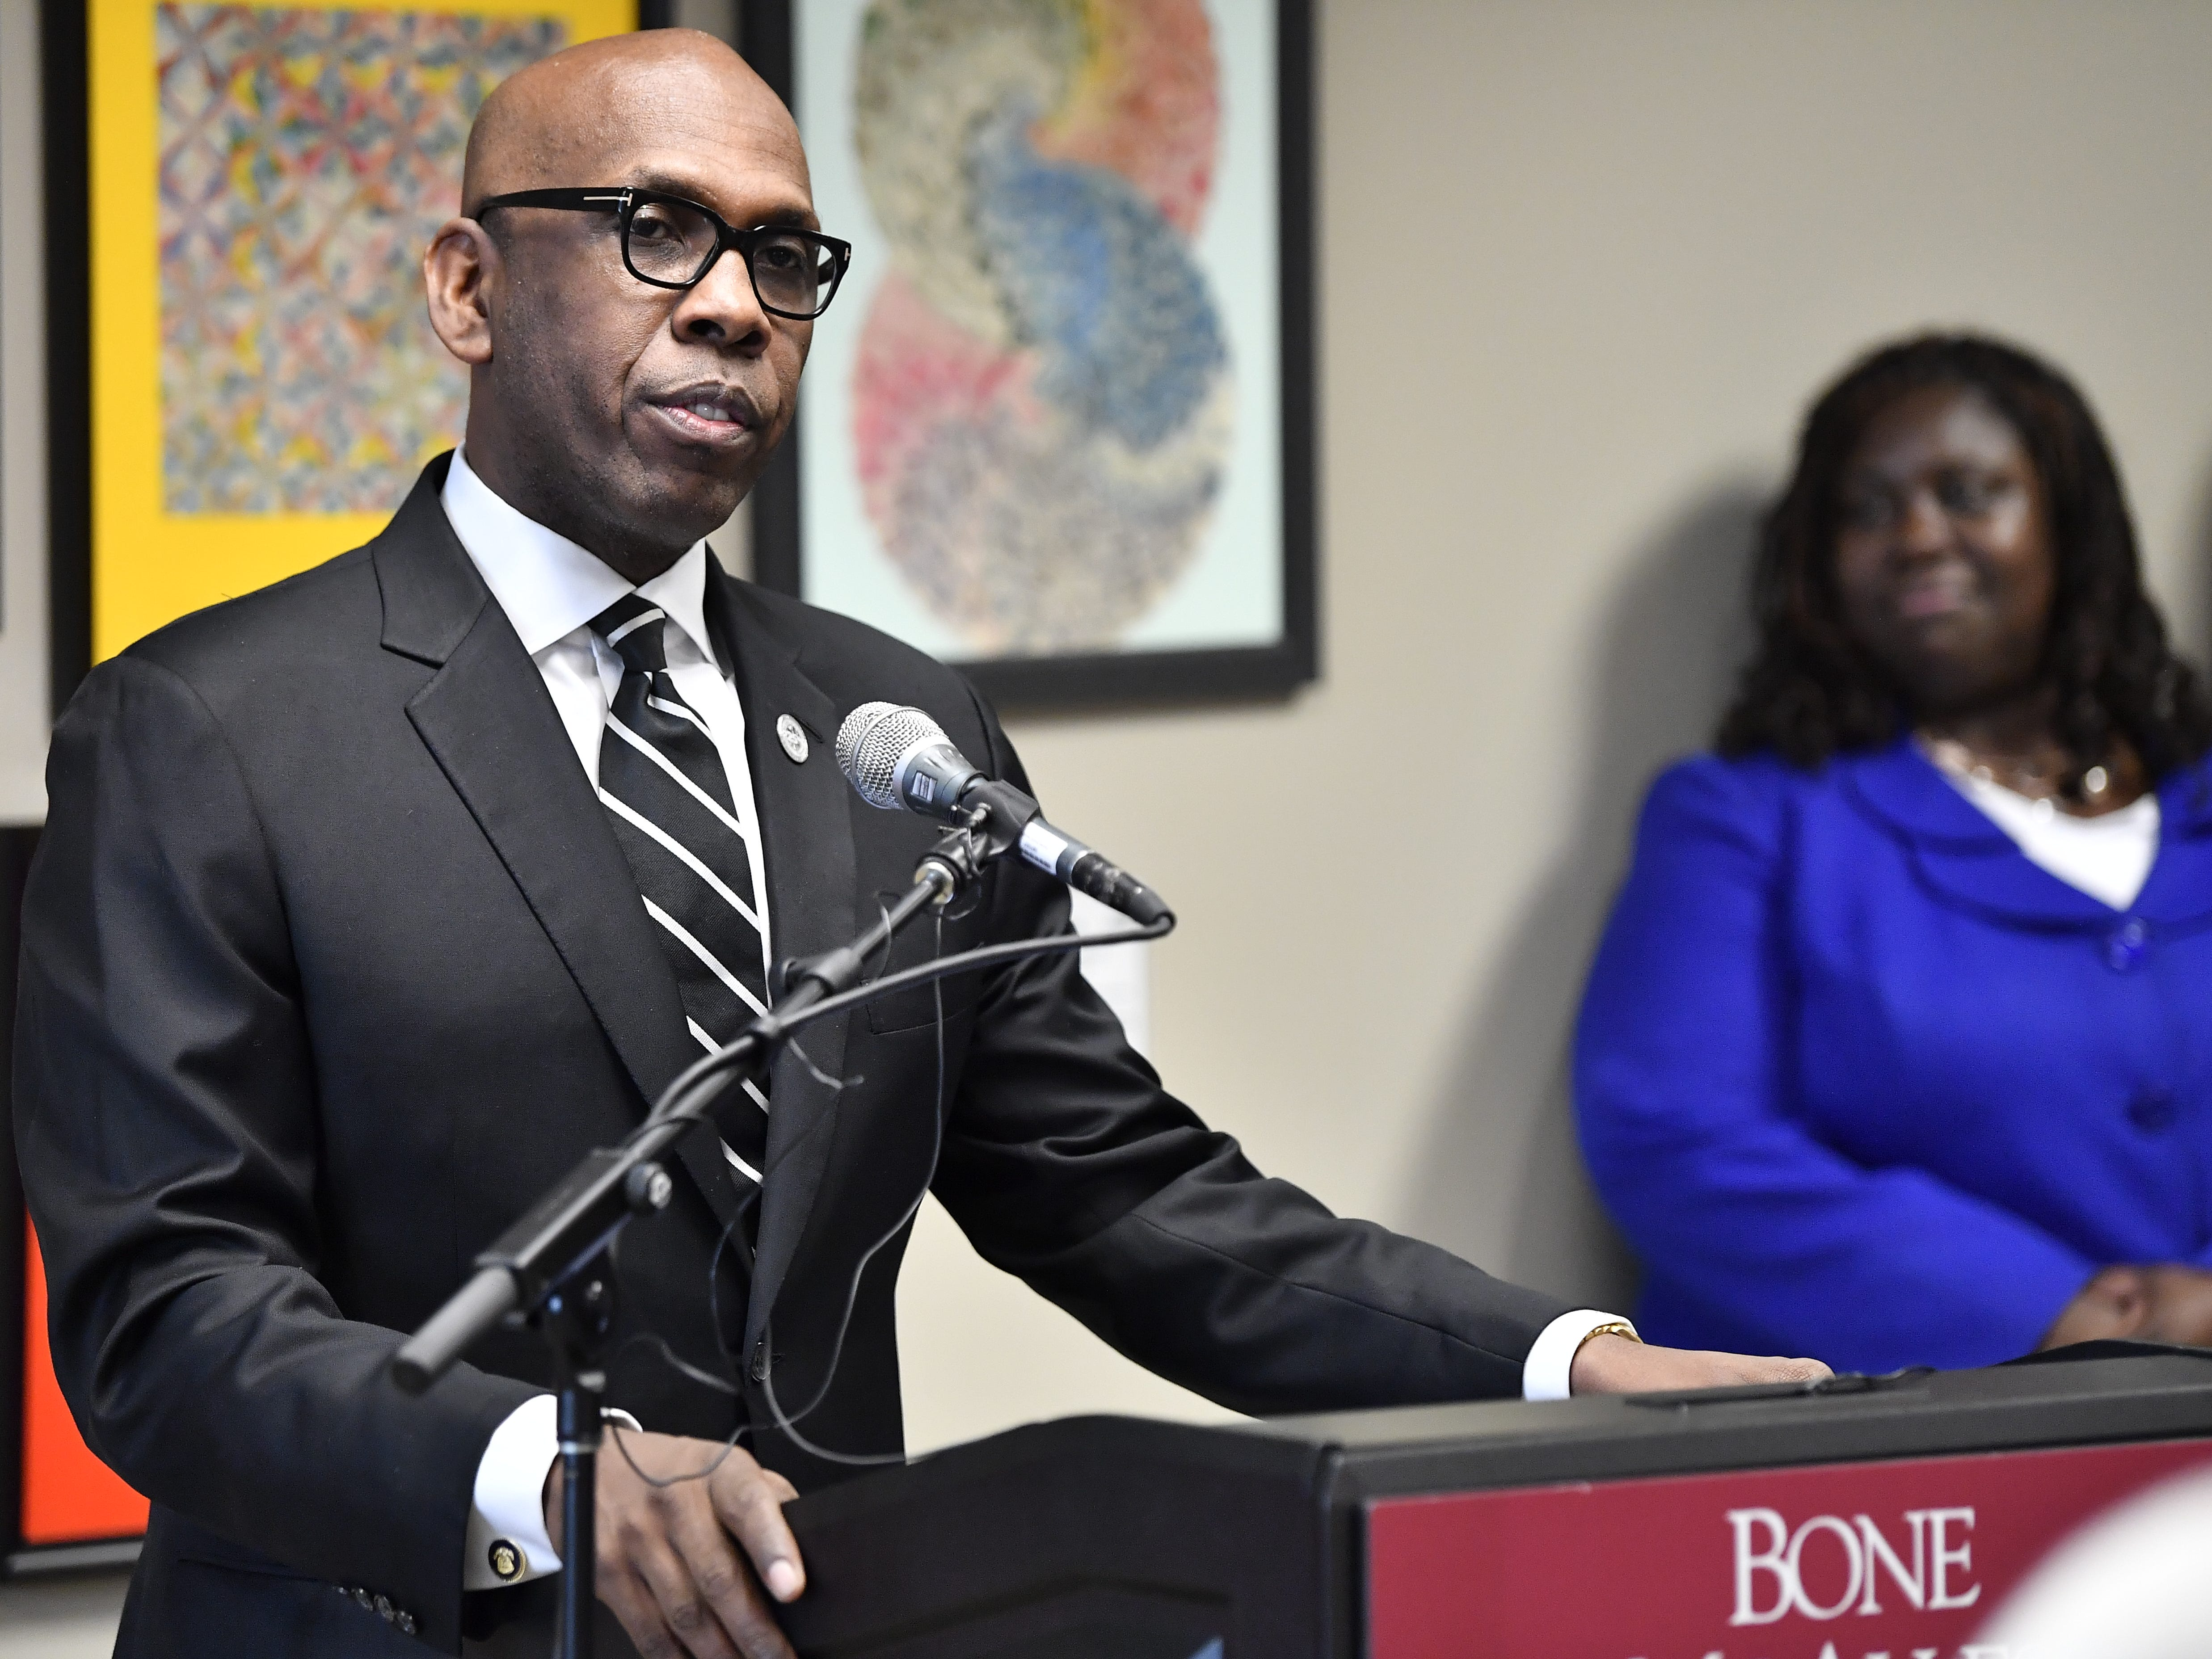 Bishop Joseph Walker speaks at a press conference Monday, Jan. 7, 2019, in Nashville, Tenn., after Gov. Bill Haslam granted full clemency to Cyntoia Brown, and set an Aug. 7 release date for her from prison.